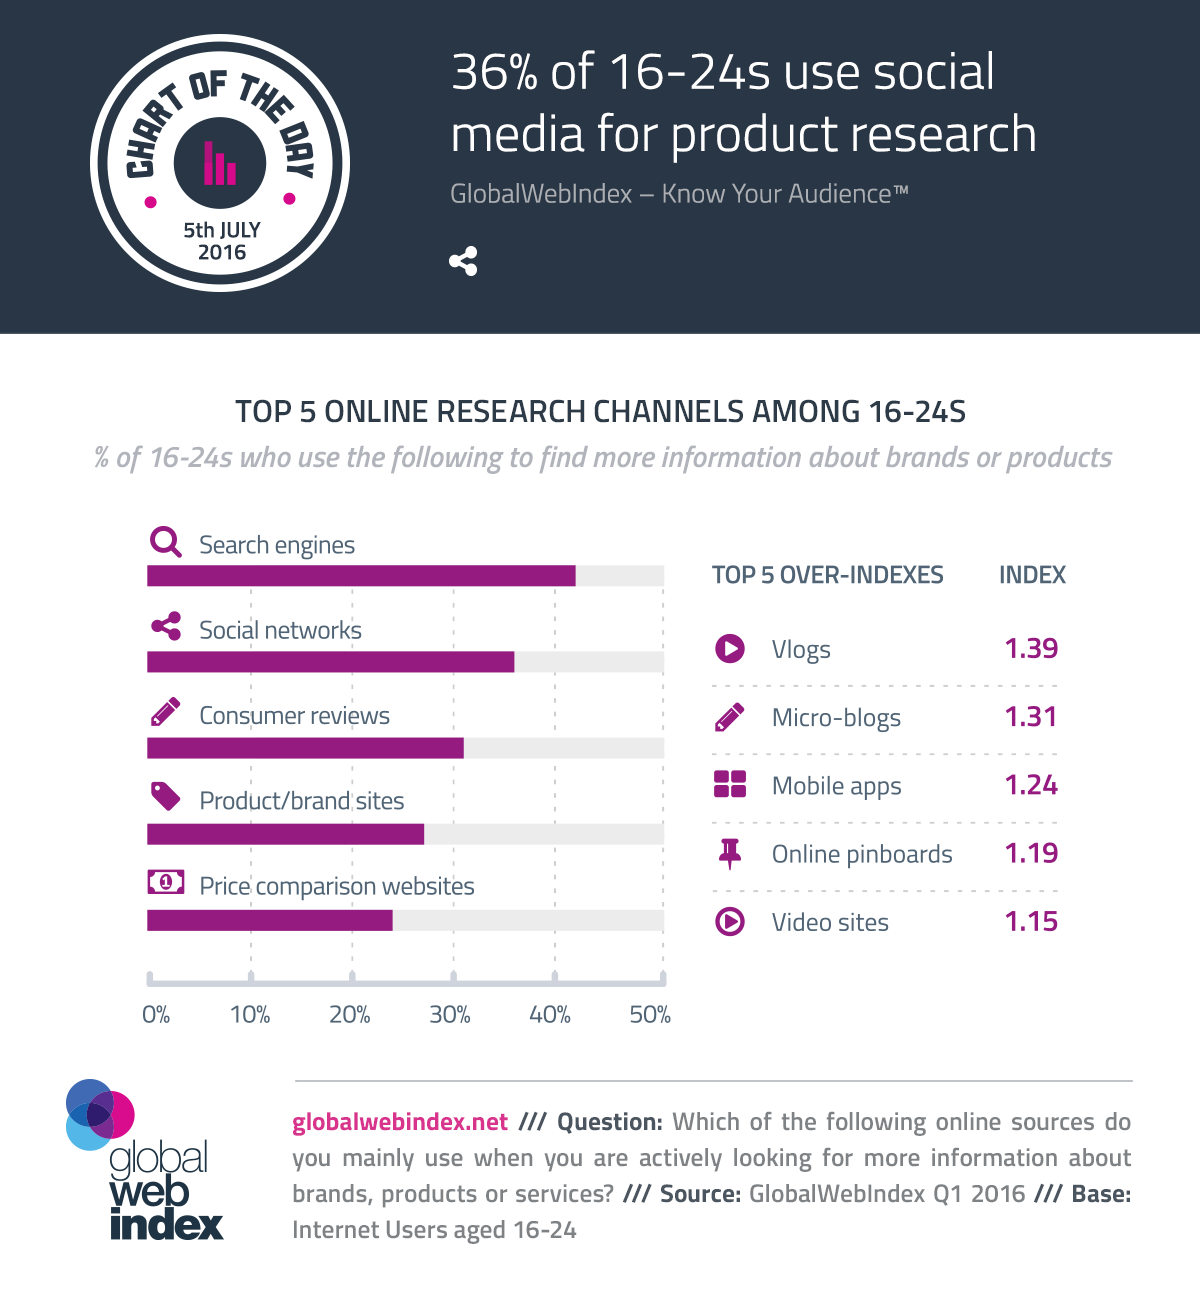 36% of 16-24s use social media for product research